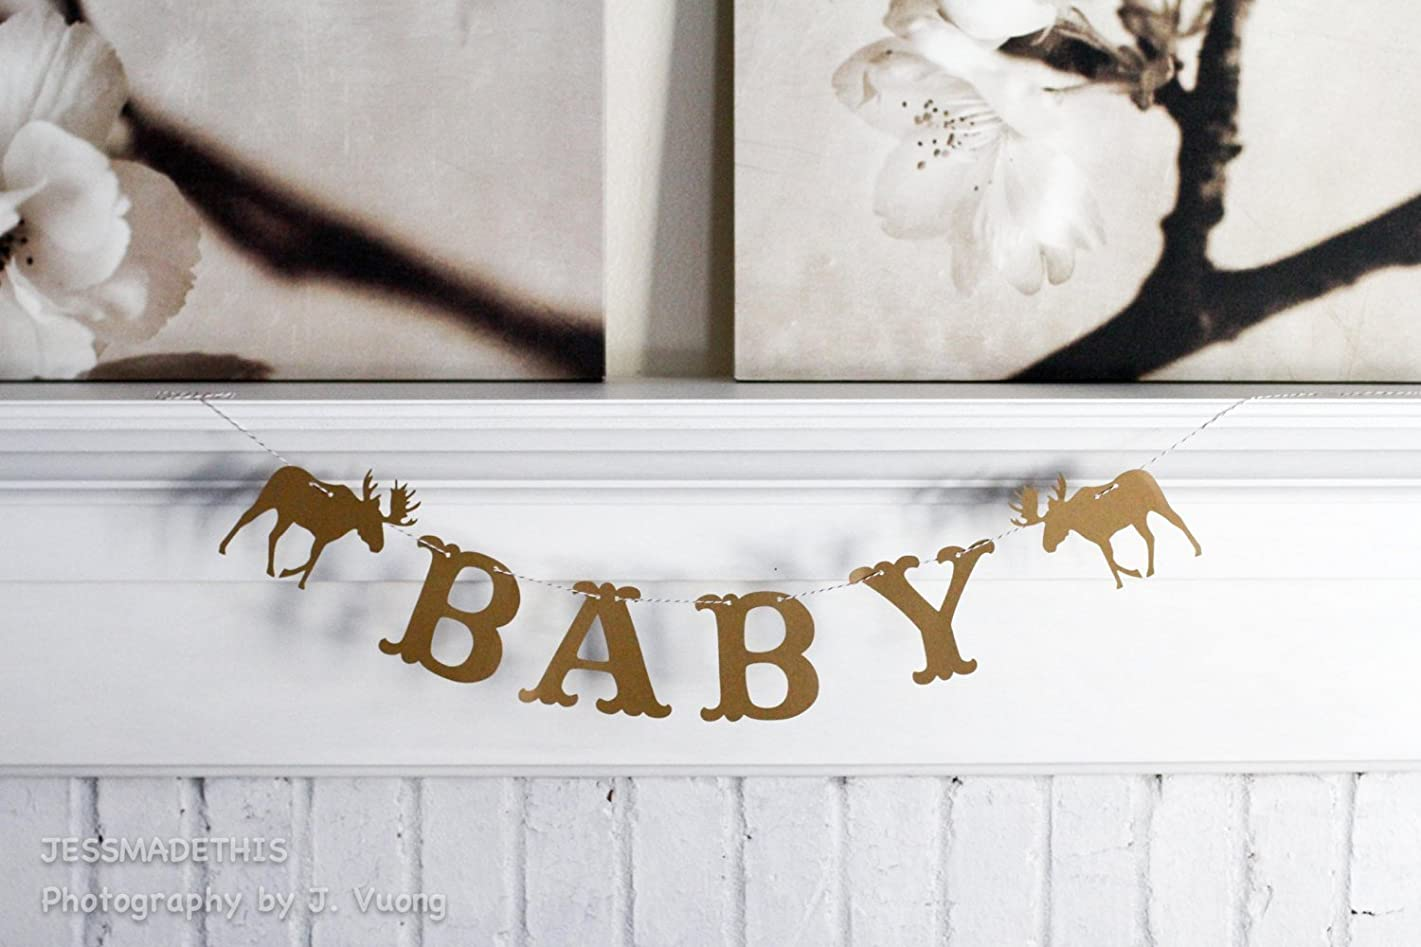 Baby Moose Banner - Decoration or Photo Prop